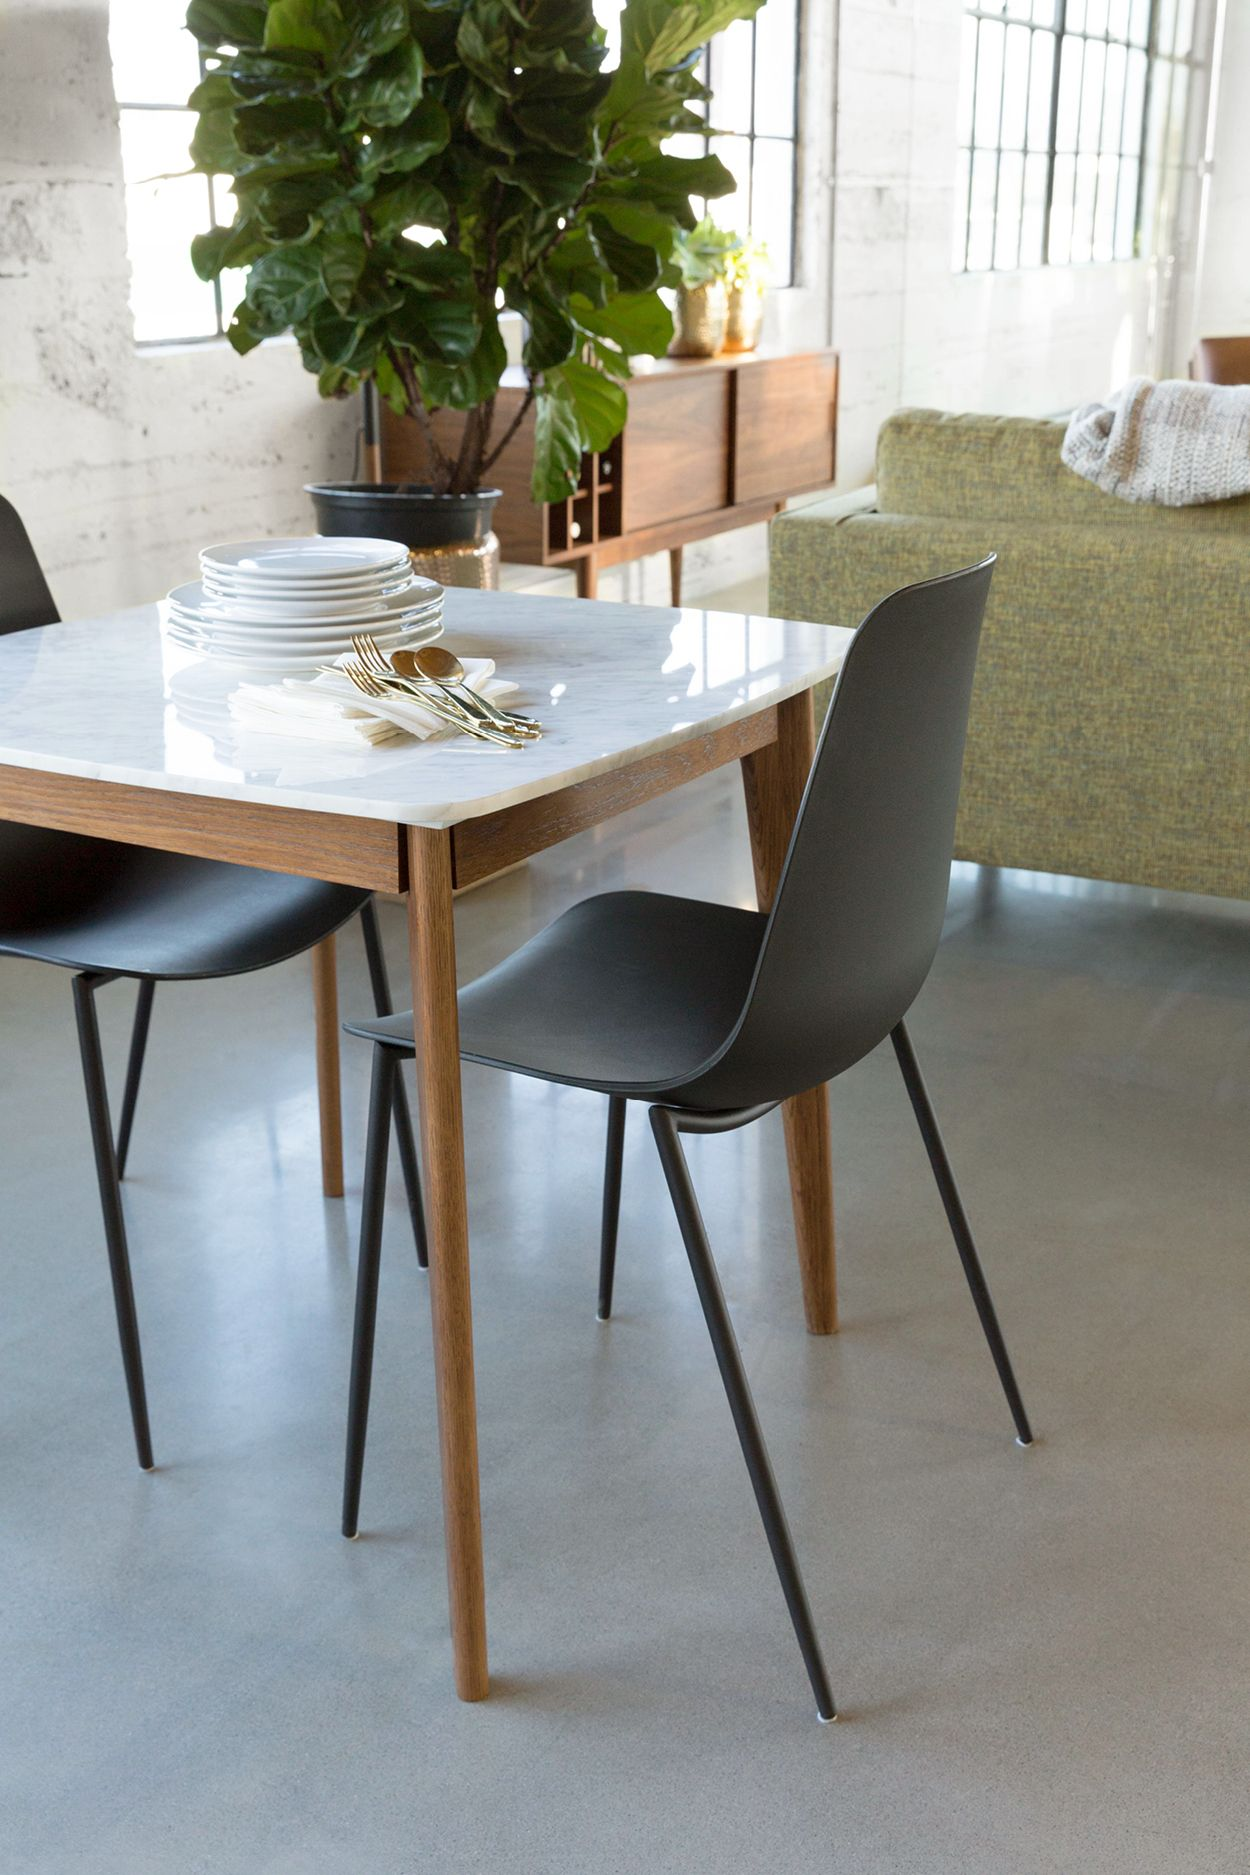 Impress your dinner date with the sleek simple and stylish design of the marble